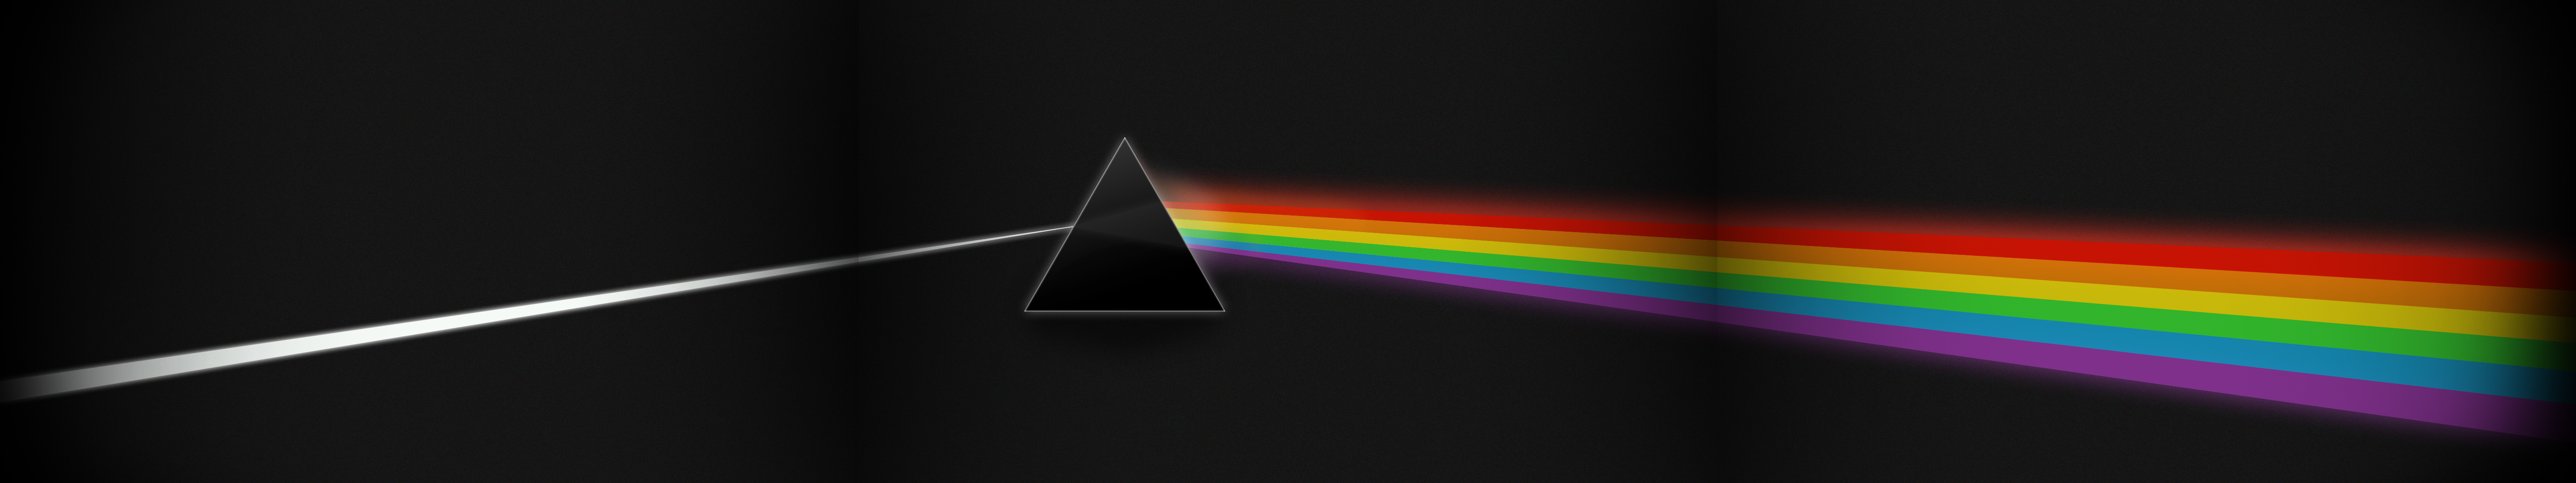 Dark Side of the Moon   Triple Monitor Wallpaper by Dosycool on 5760x1080